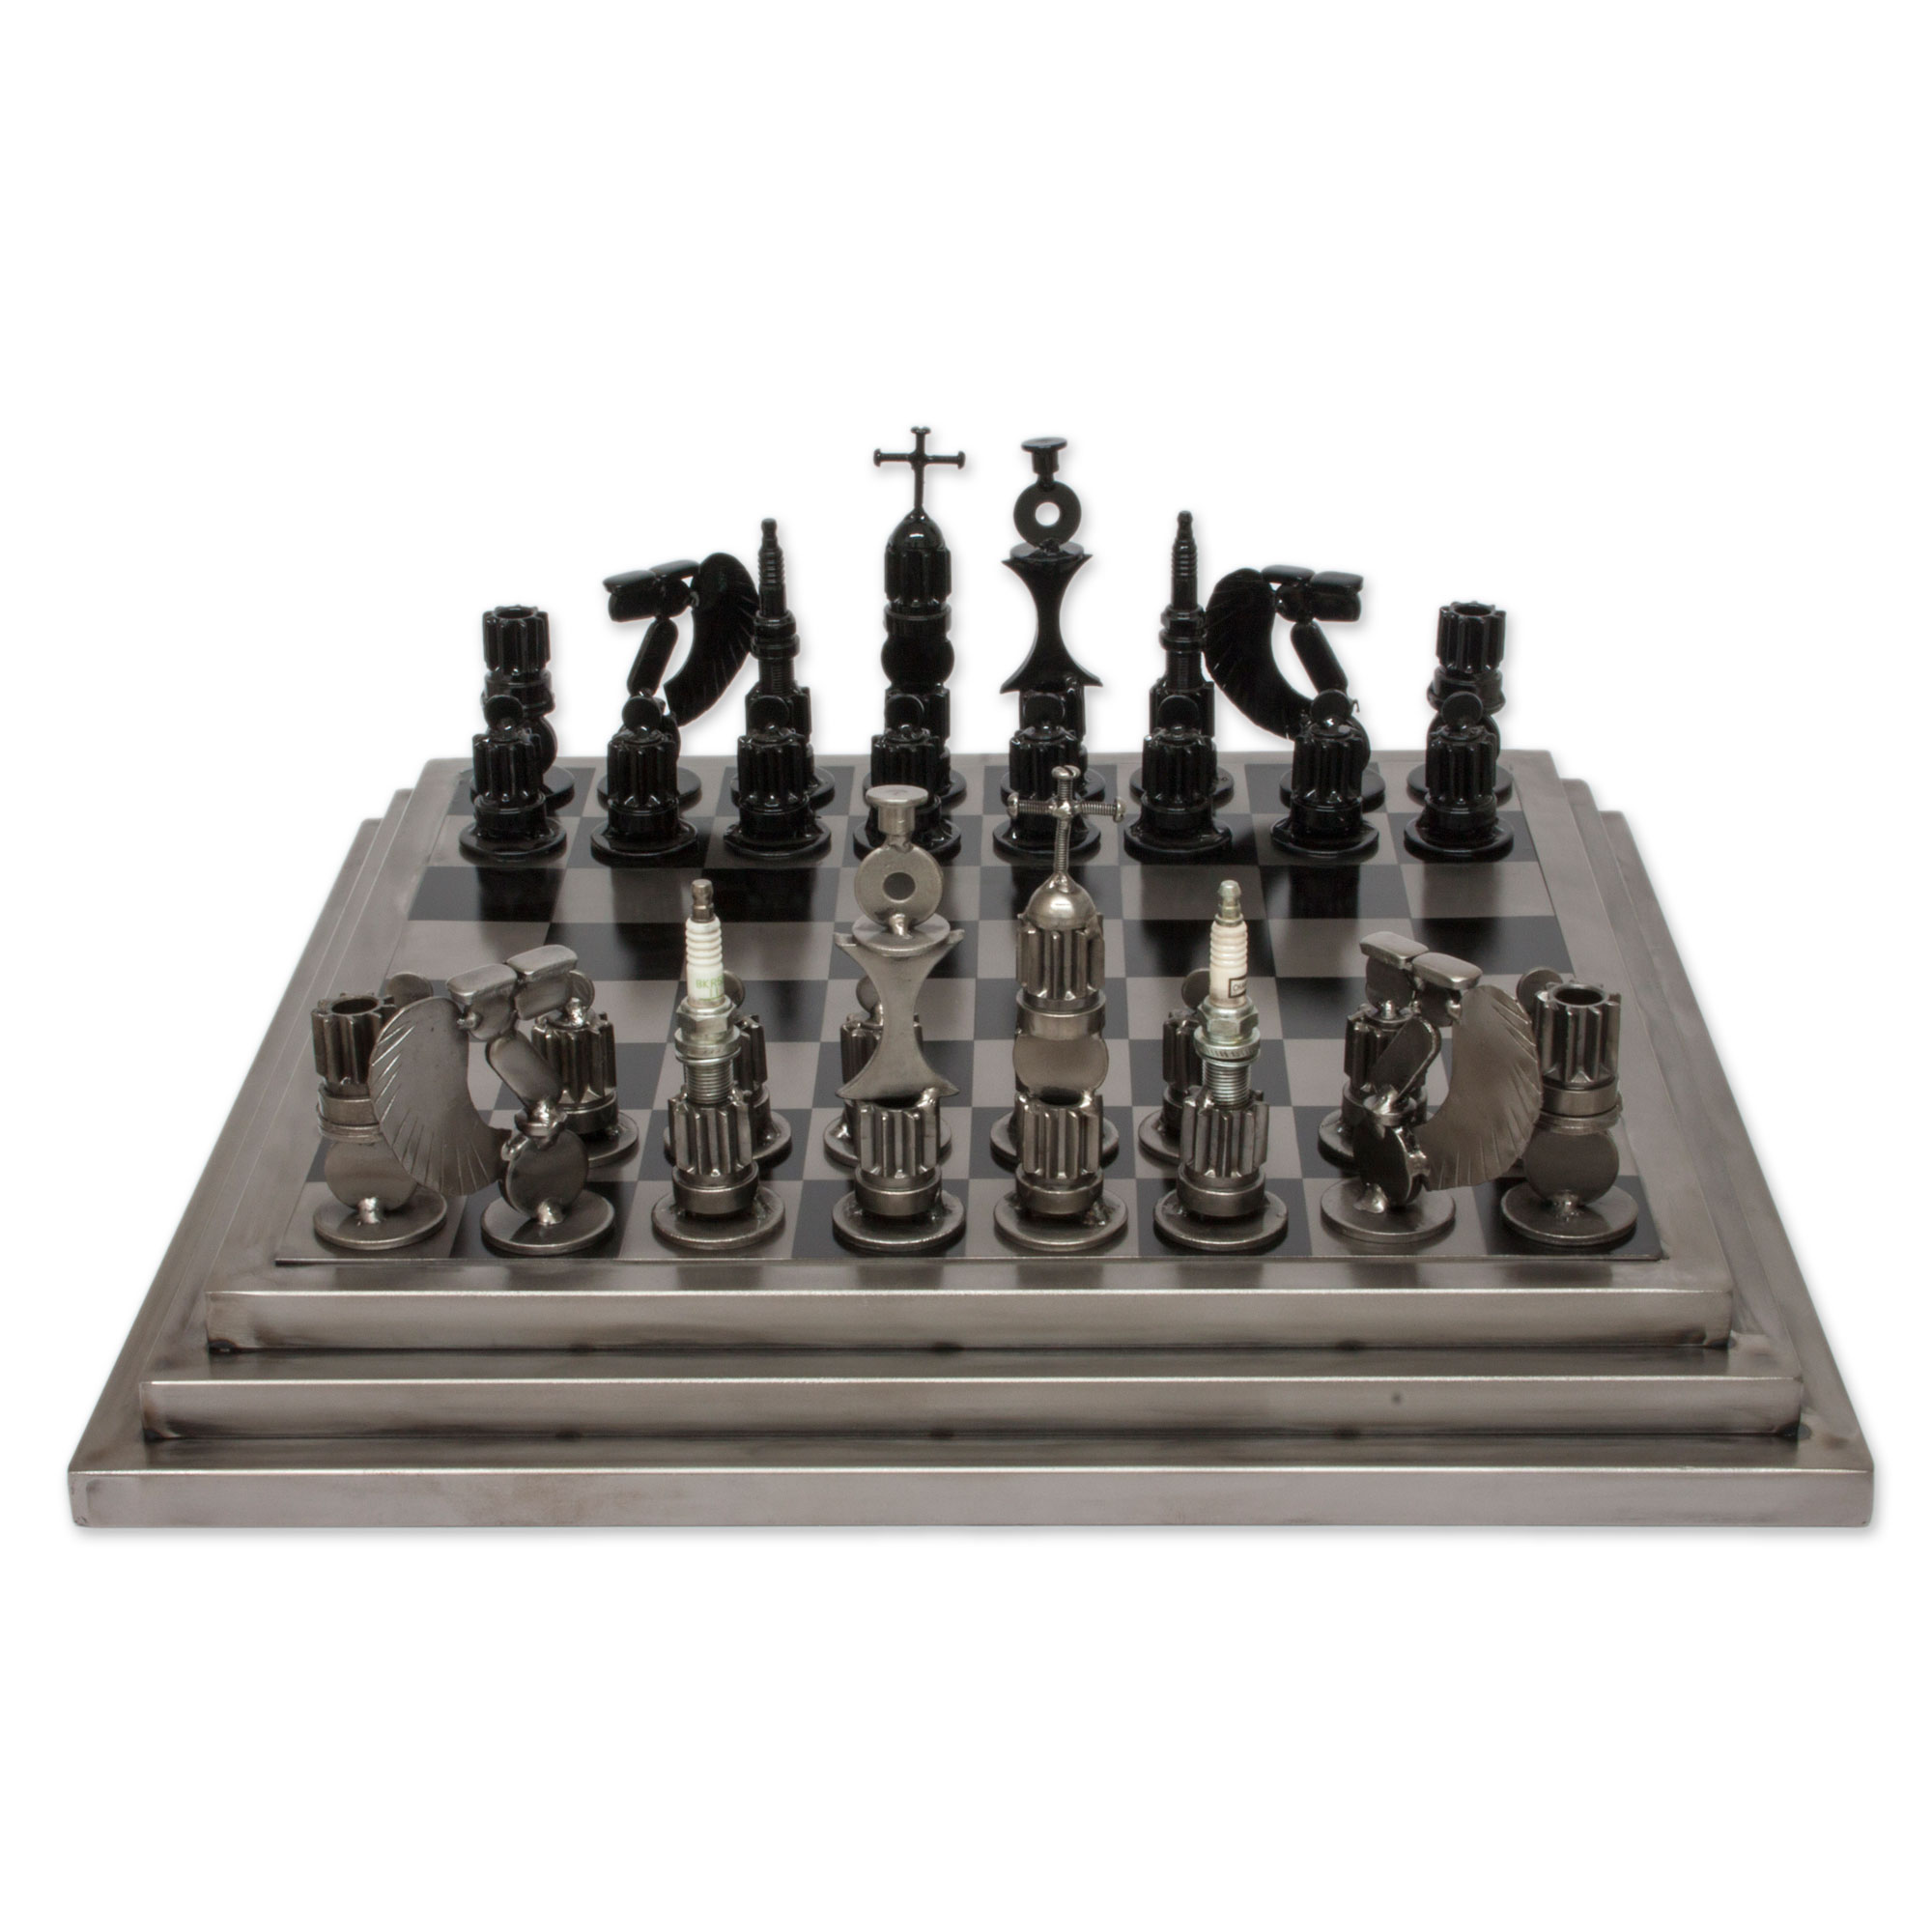 Steel Chess Set recycled auto part rustic warrior chess set